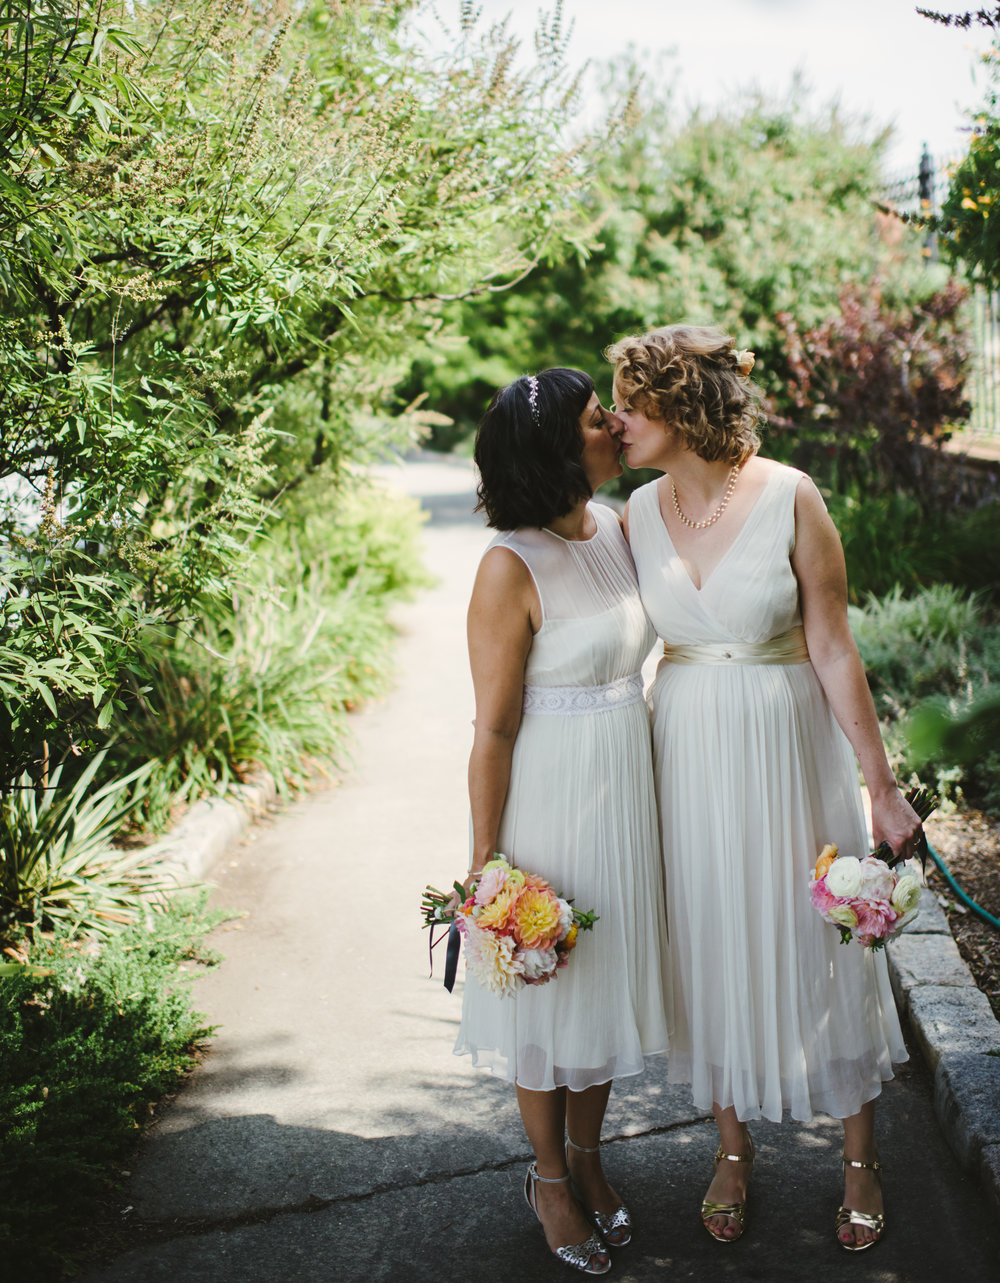 NANCY & CARA - FRANKIES 457 SPUNTINO - BROOKLYN INTIMATE WEDDING by CHI-CHI ARI-50.jpg